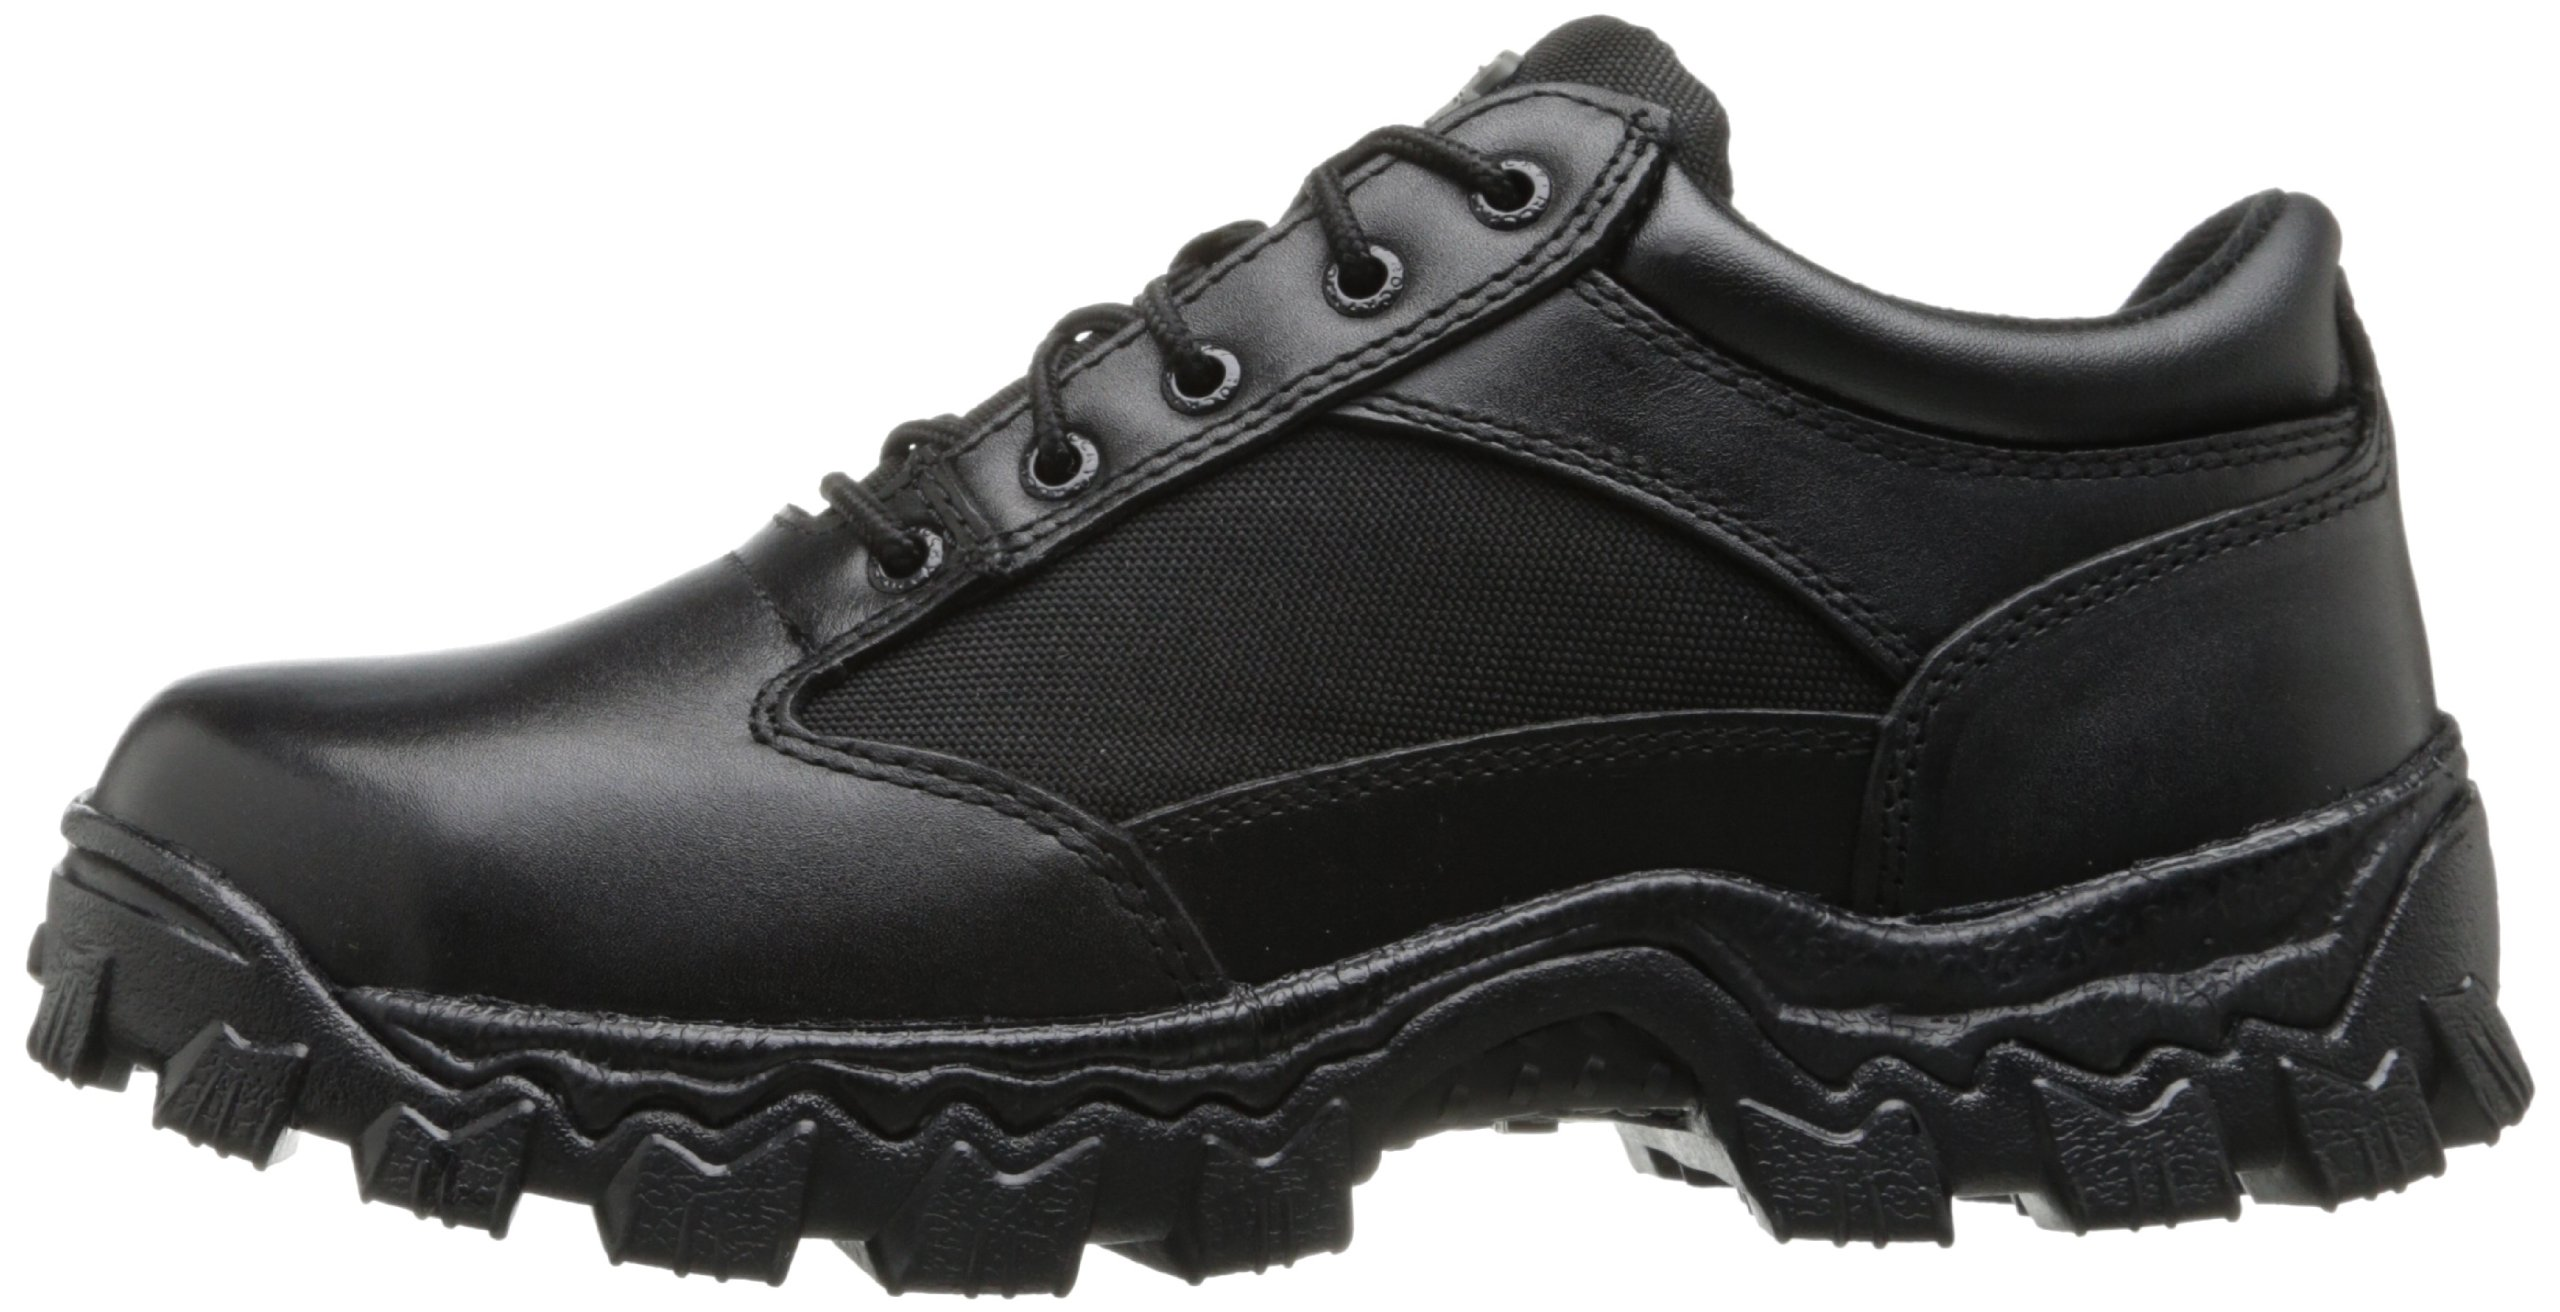 Rocky Men's Alpha Force Oxford-M, Black, 9.5 W US by Rocky (Image #5)